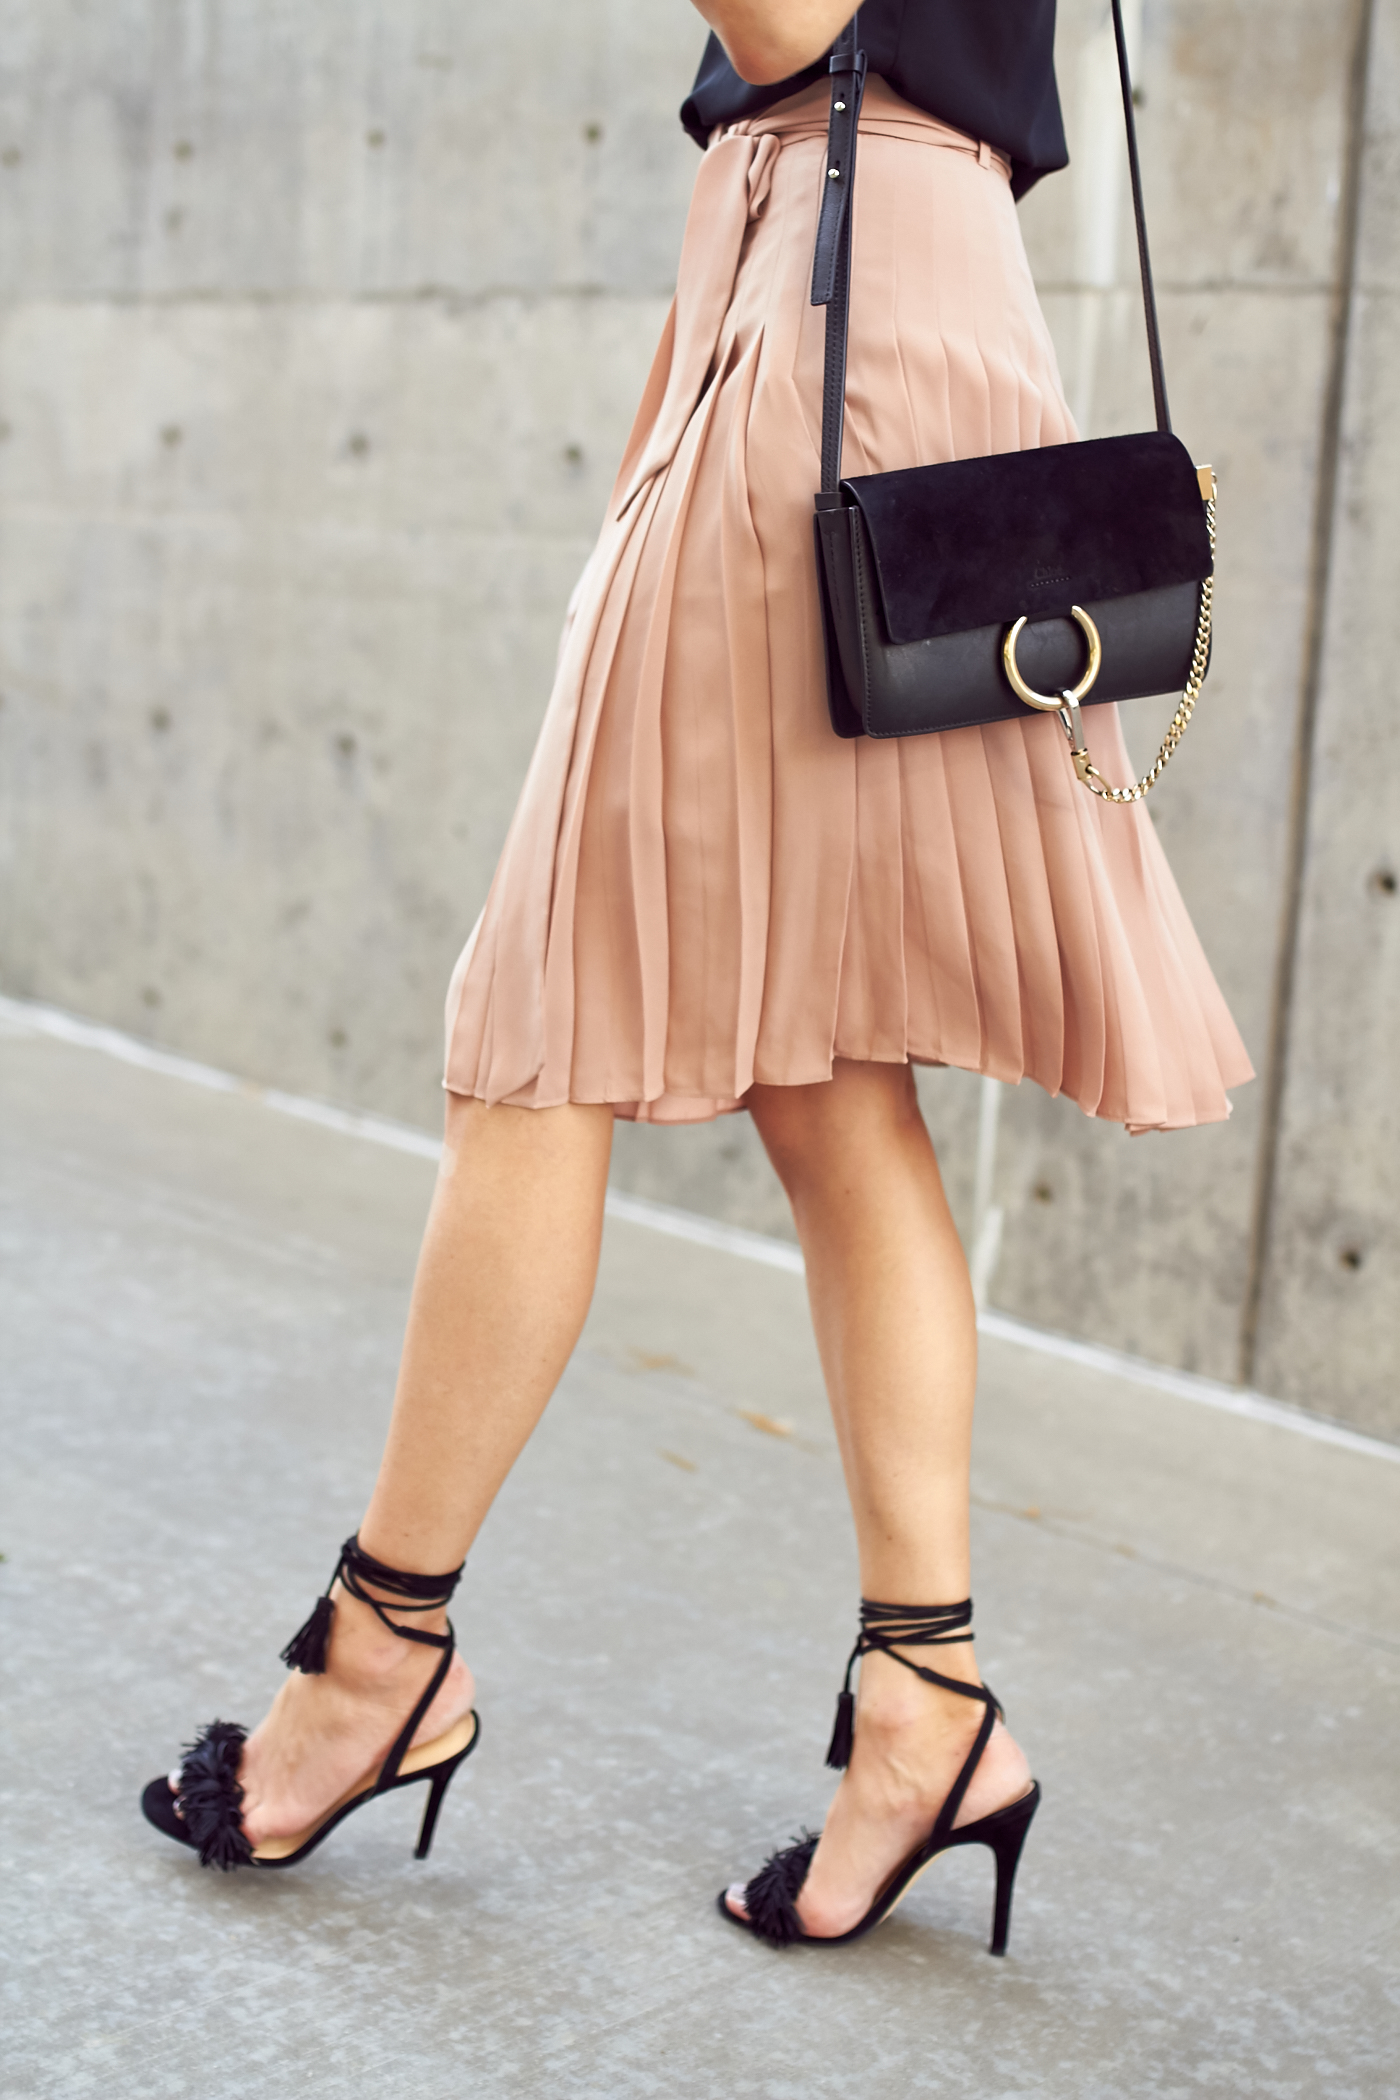 fashion-jackson-black-fringe-heels-pink-pleated-skirt-chloe-black-faye-handbag